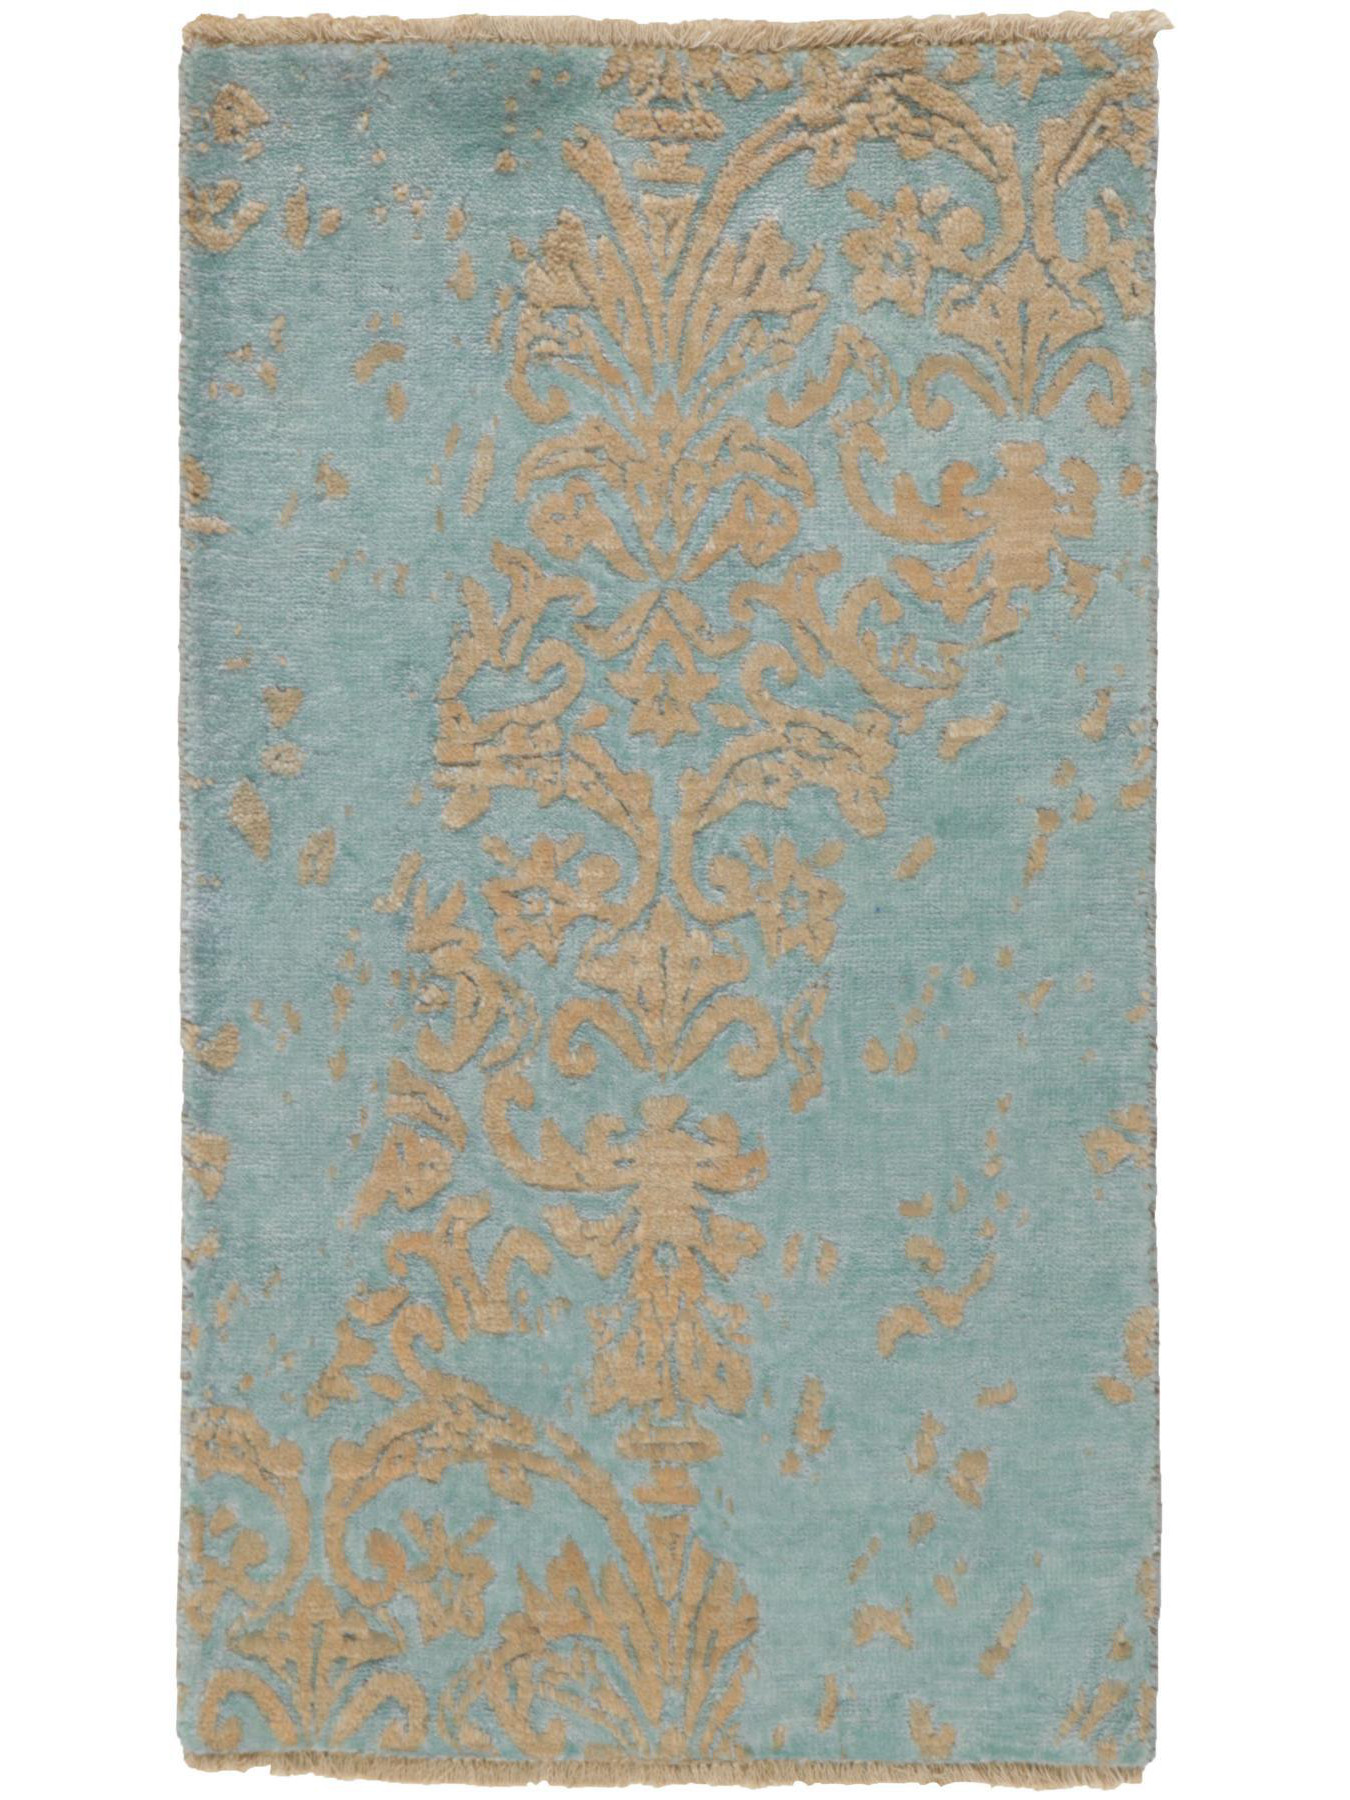 Luxury carpets - Damask-AL-2E B-23/B-34